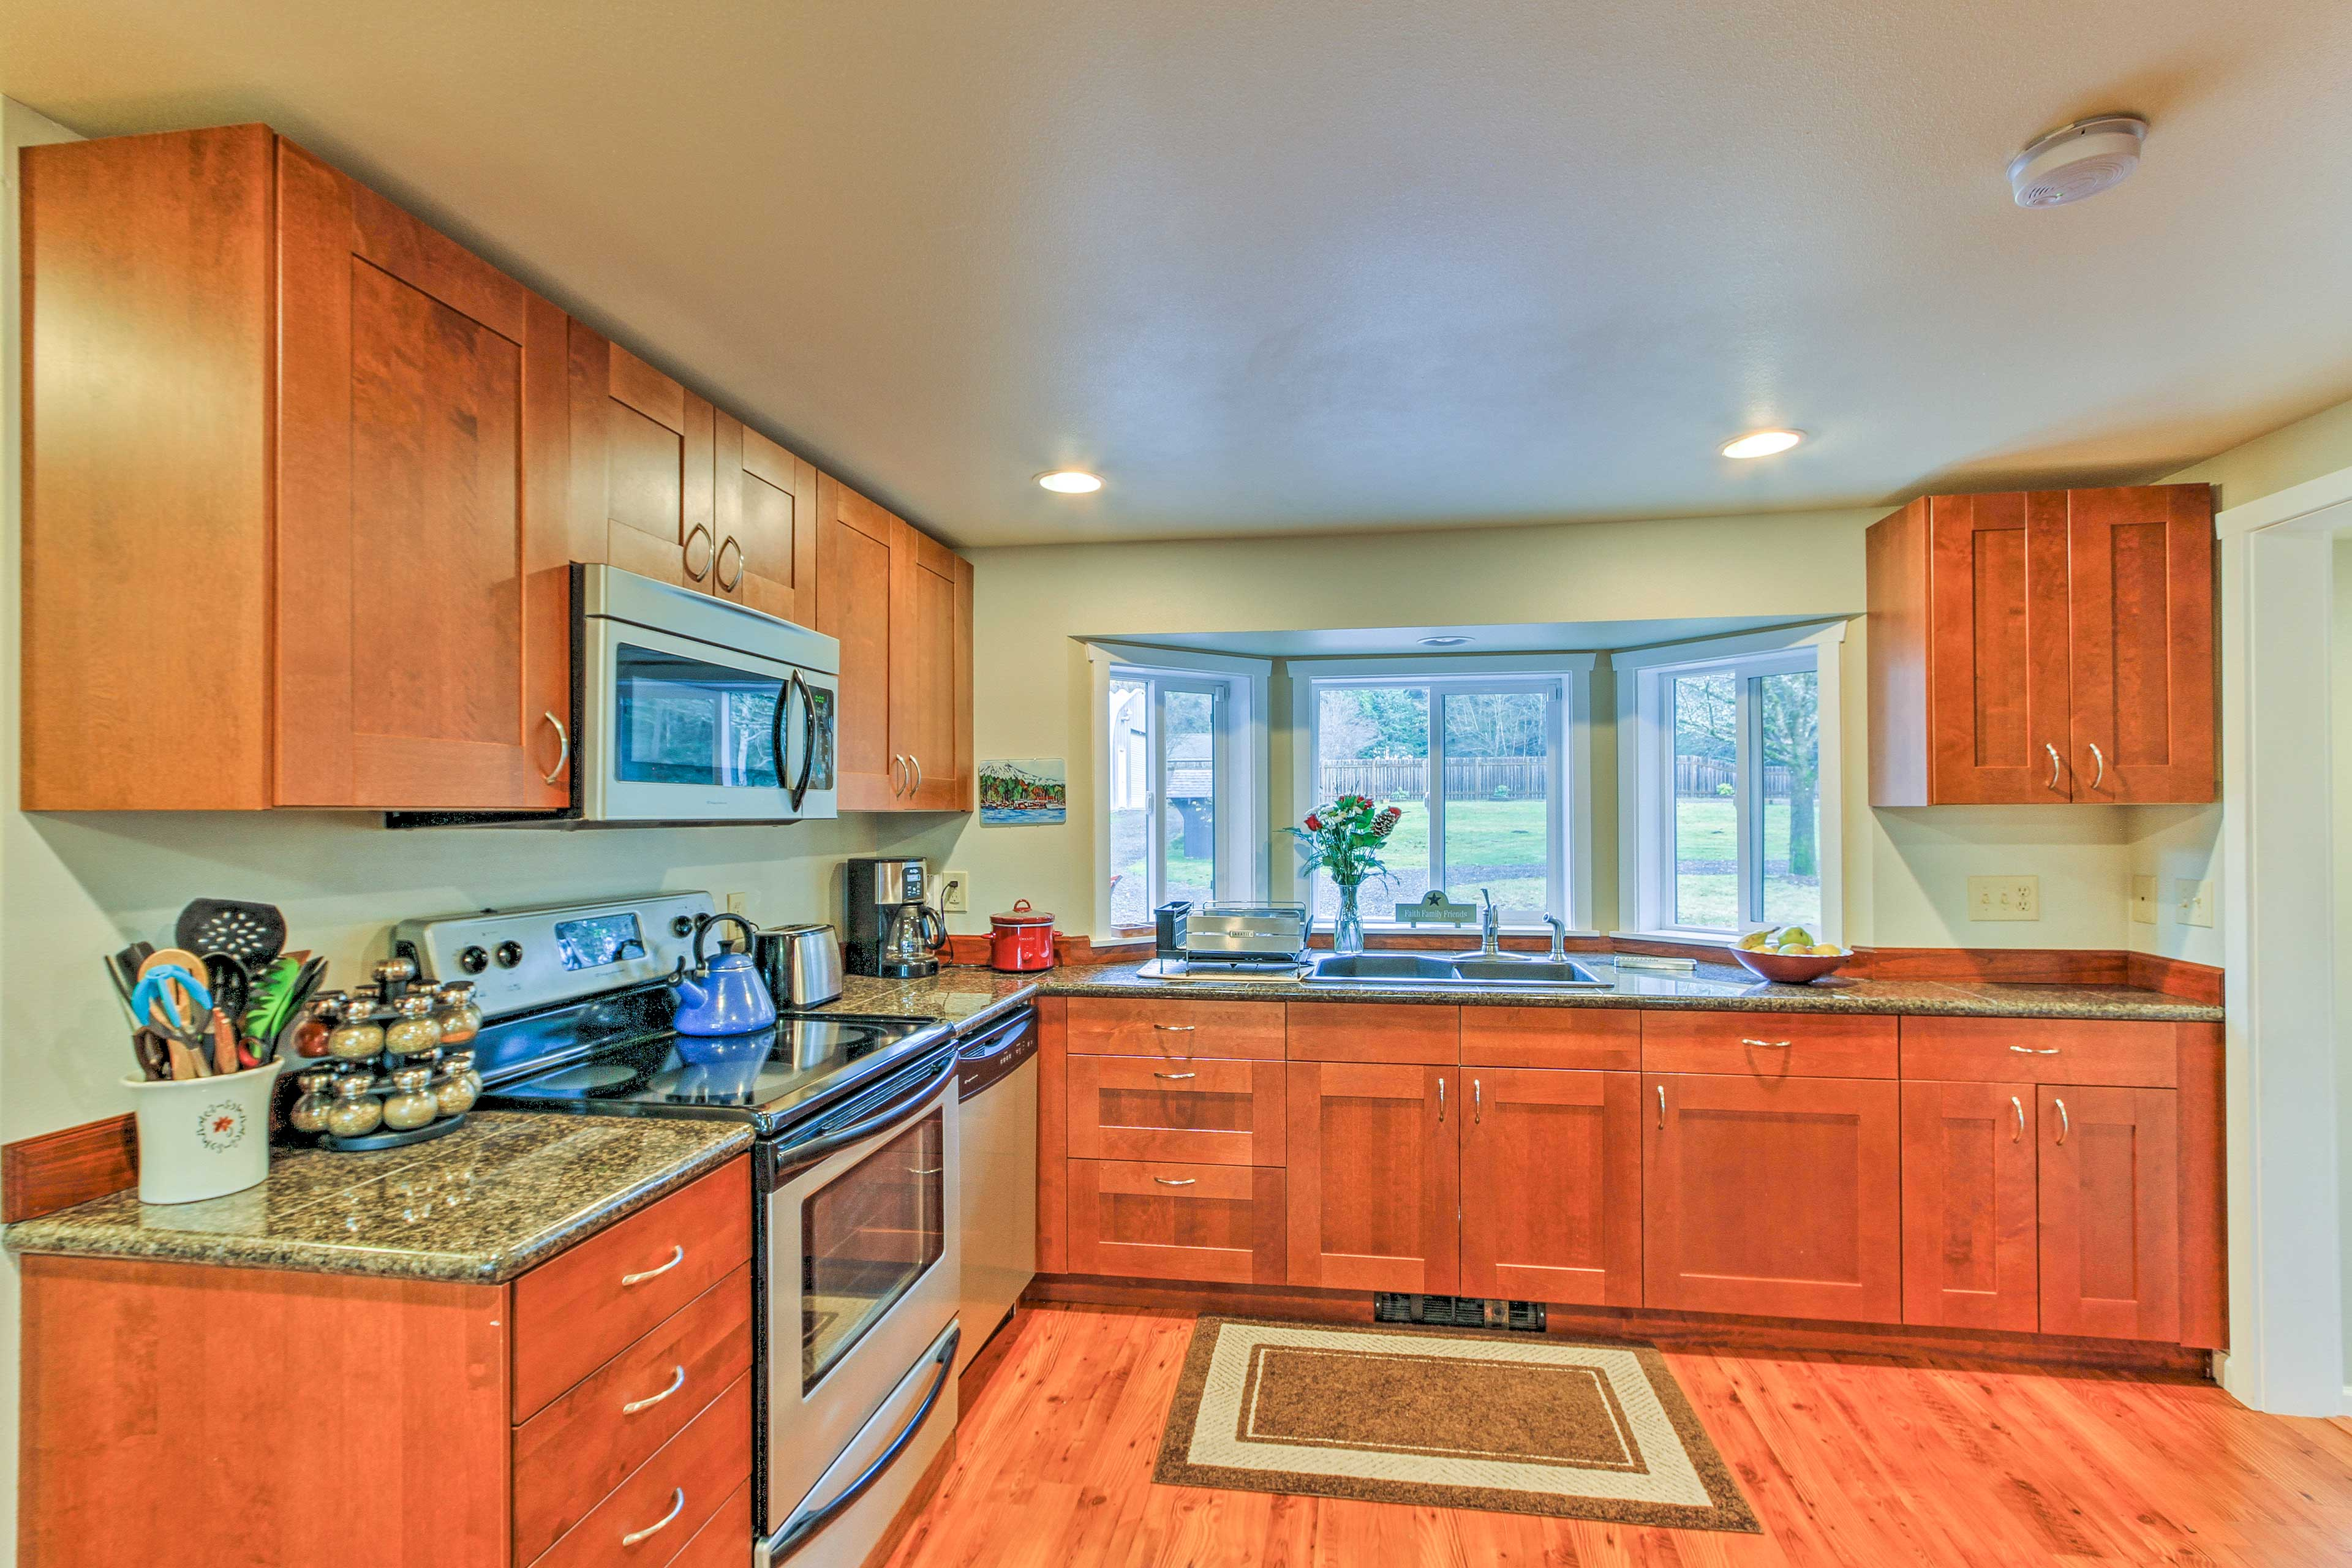 Stainless steel appliances highlight the fully equipped kitchen!